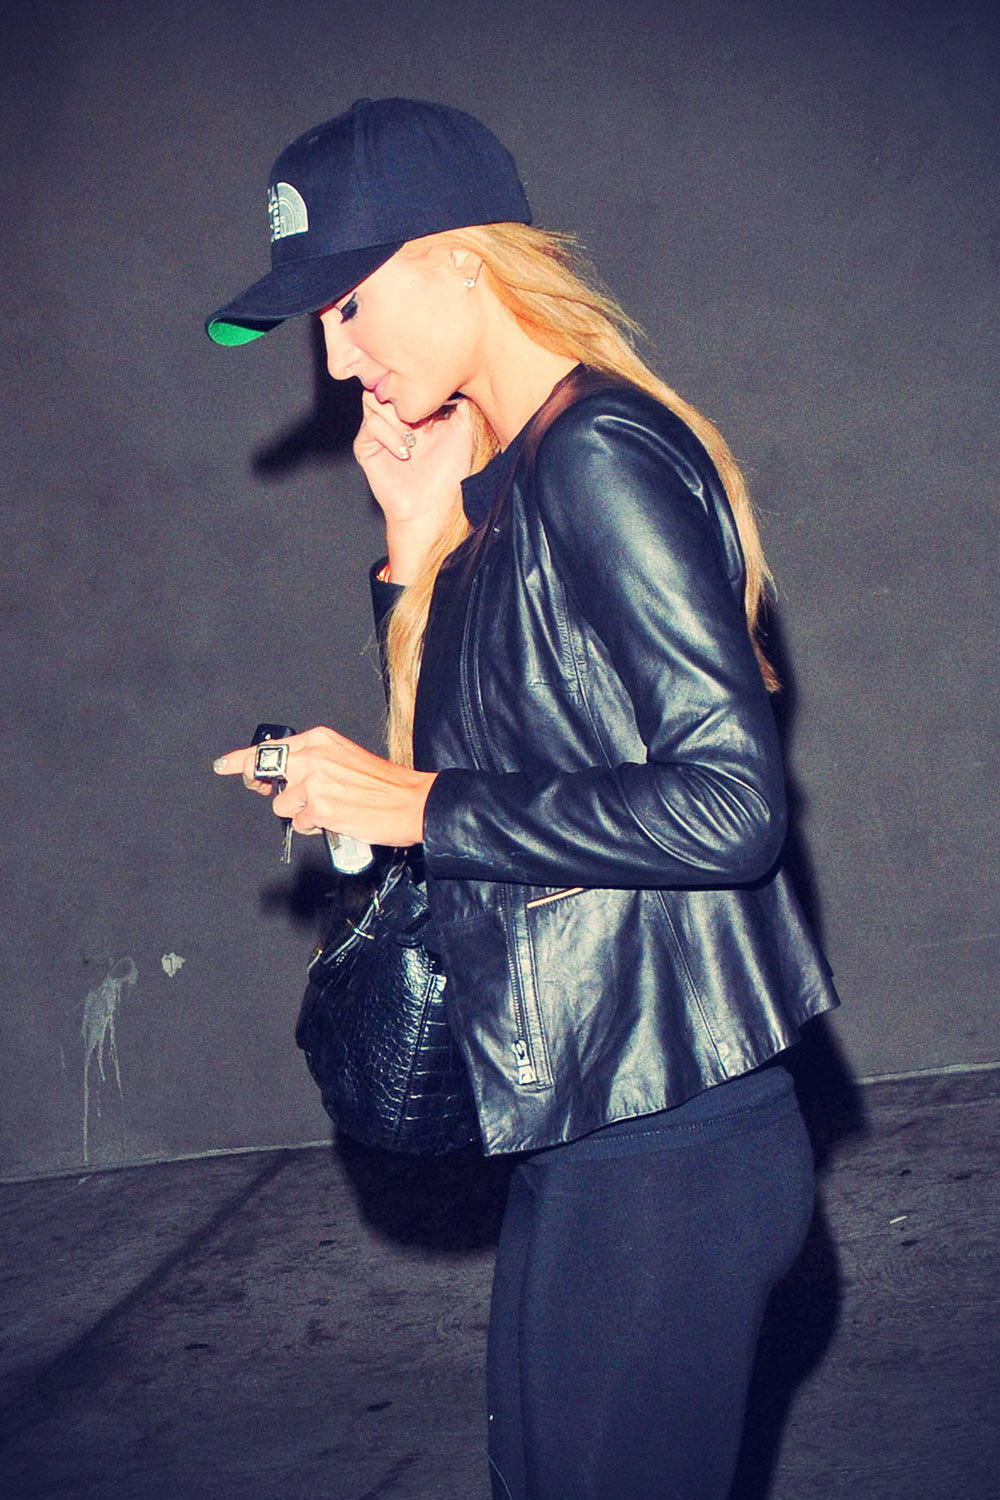 Paris Hilton at the ArcLight Cinemas in Hollywood